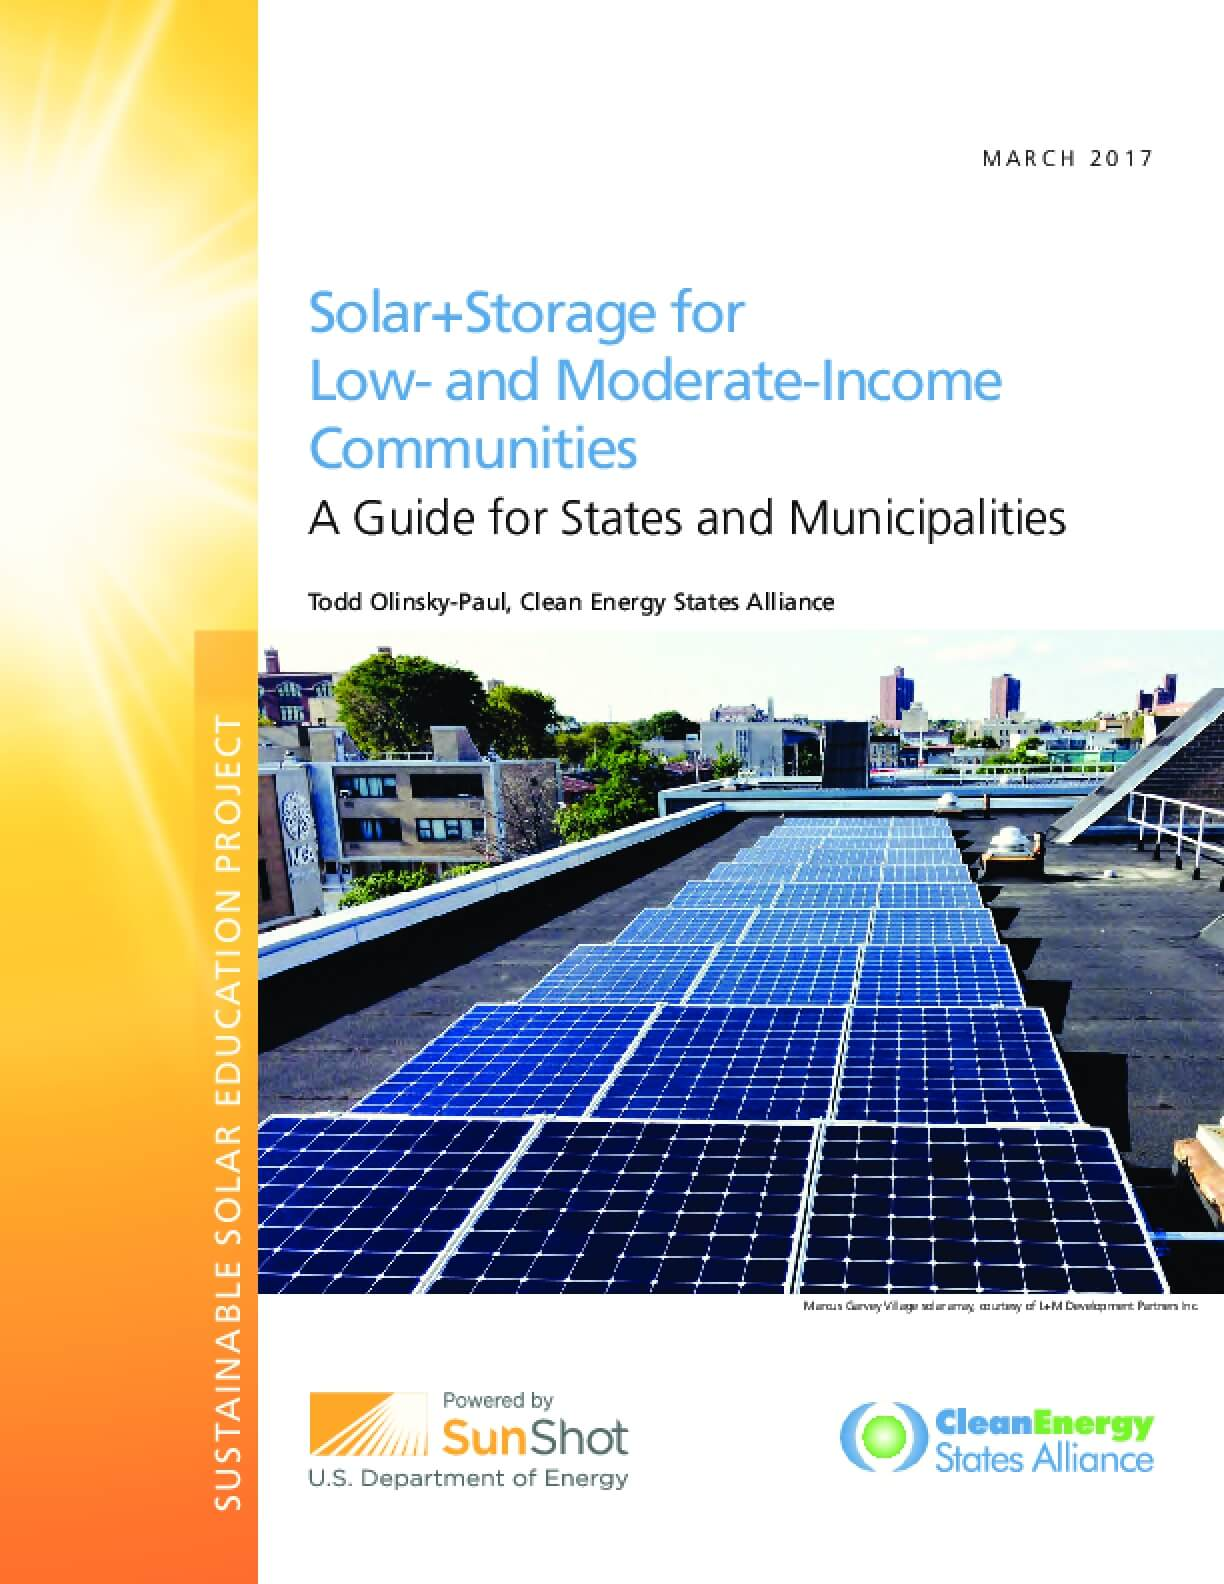 Solar+Storage for Low-and Moderate-Income Communities: A Guide for States and Municipalities